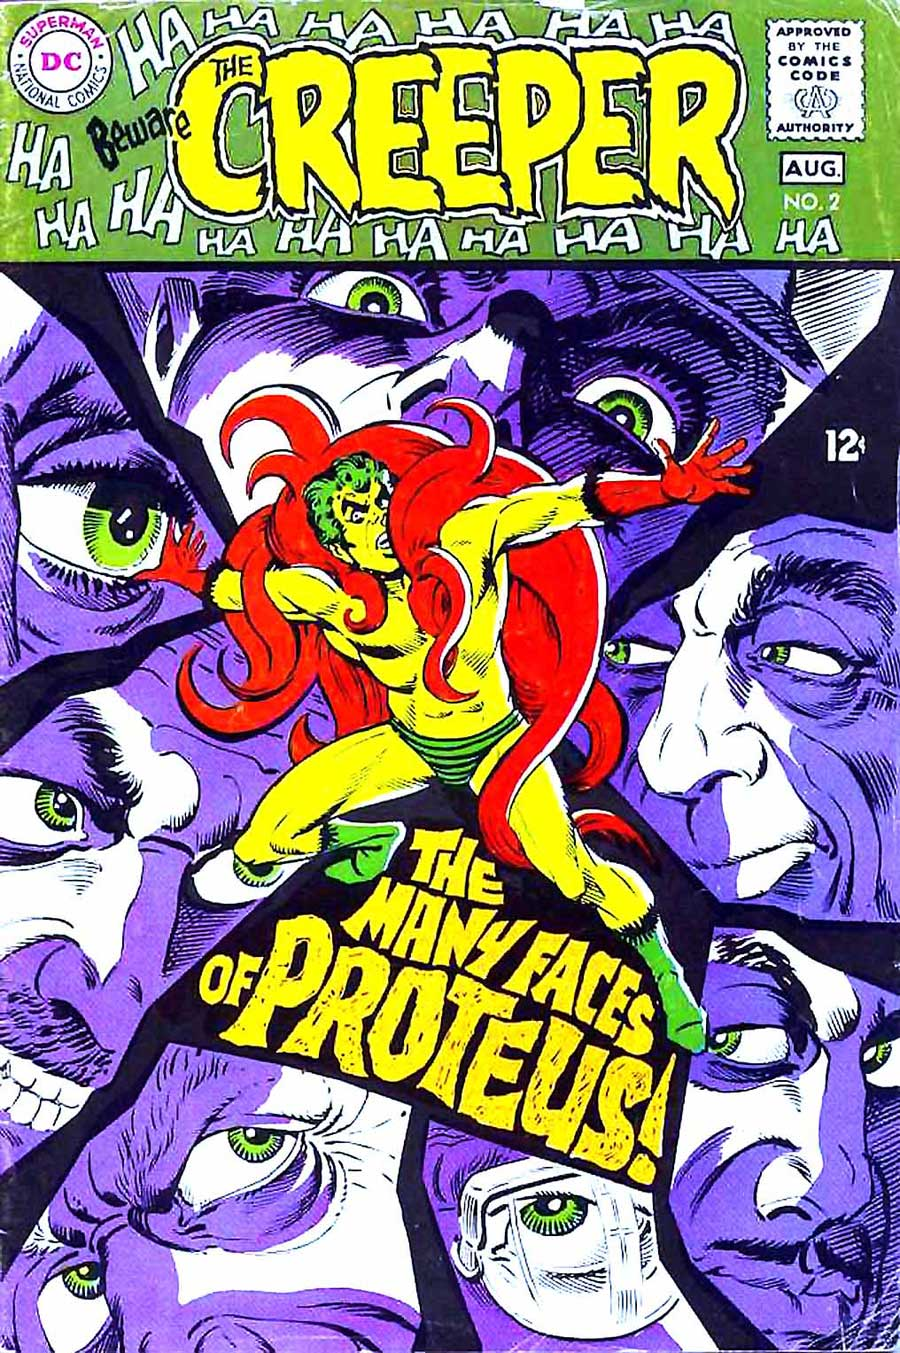 Beware the Creeper v1 #2 dc 1960s silver age comic book cover art by Steve Ditko